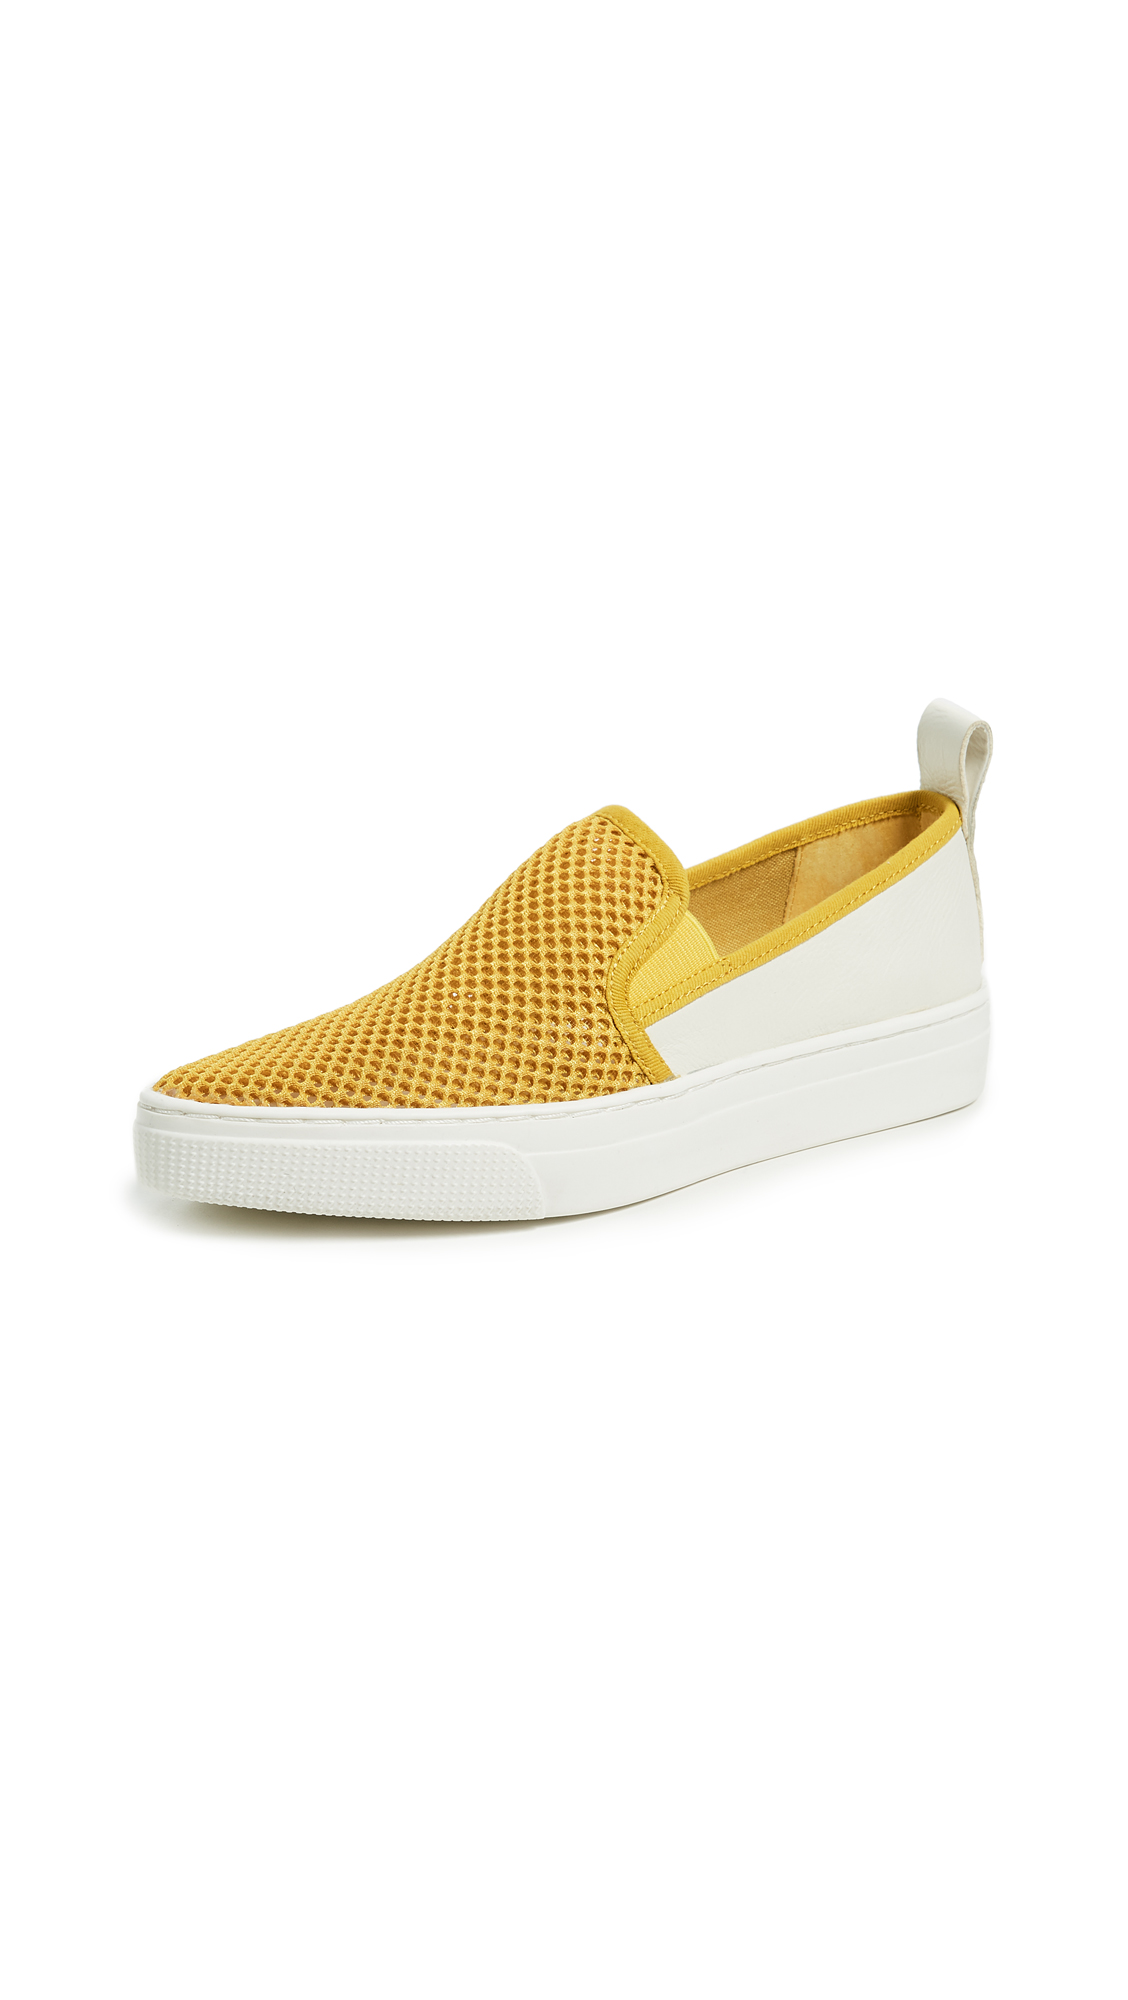 Dolce Vita Geoff Woven Sneakers - Yellow